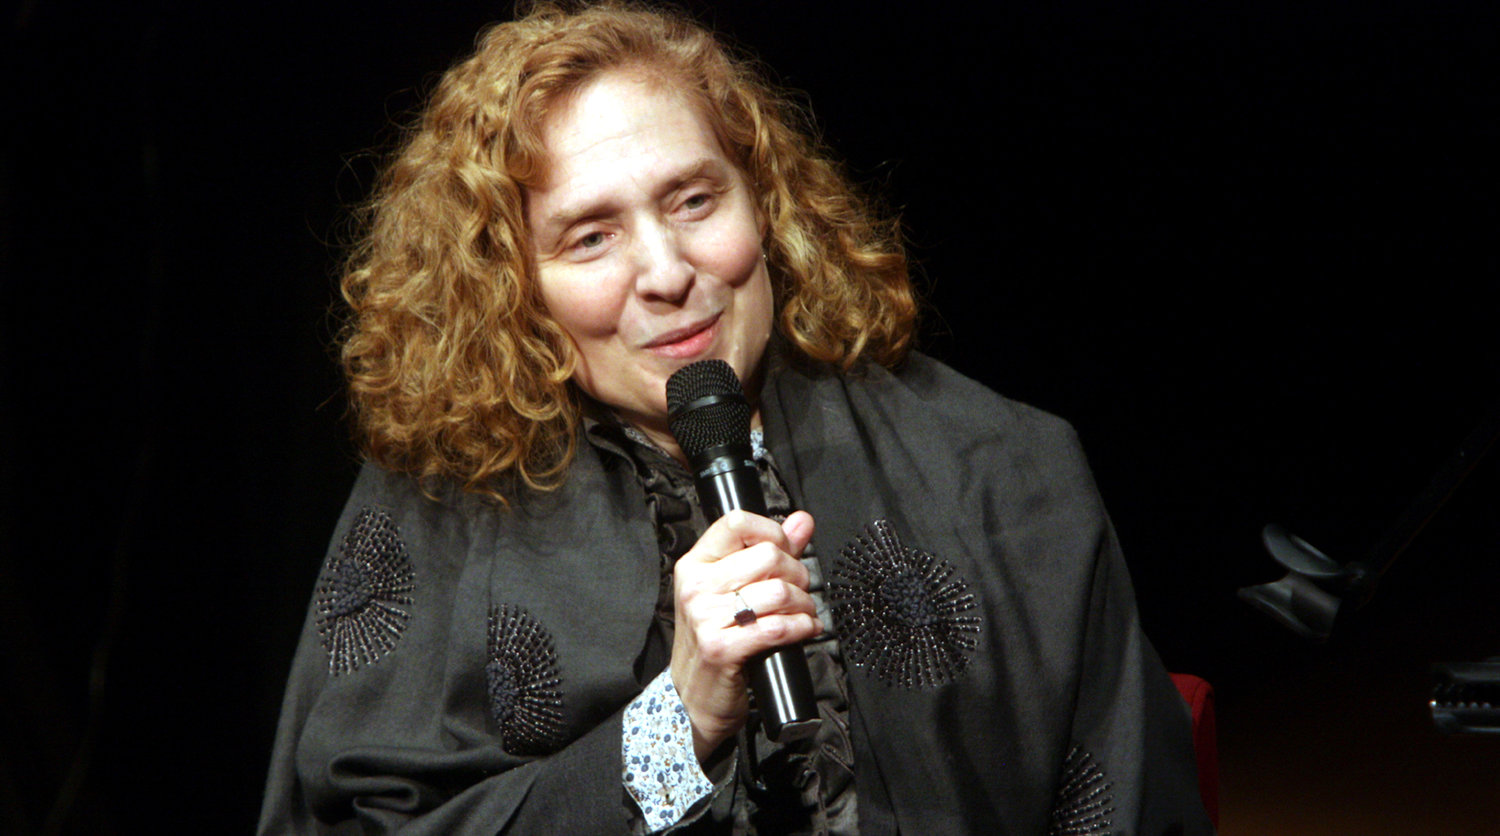 Composer Julia Wolfe in 2011.